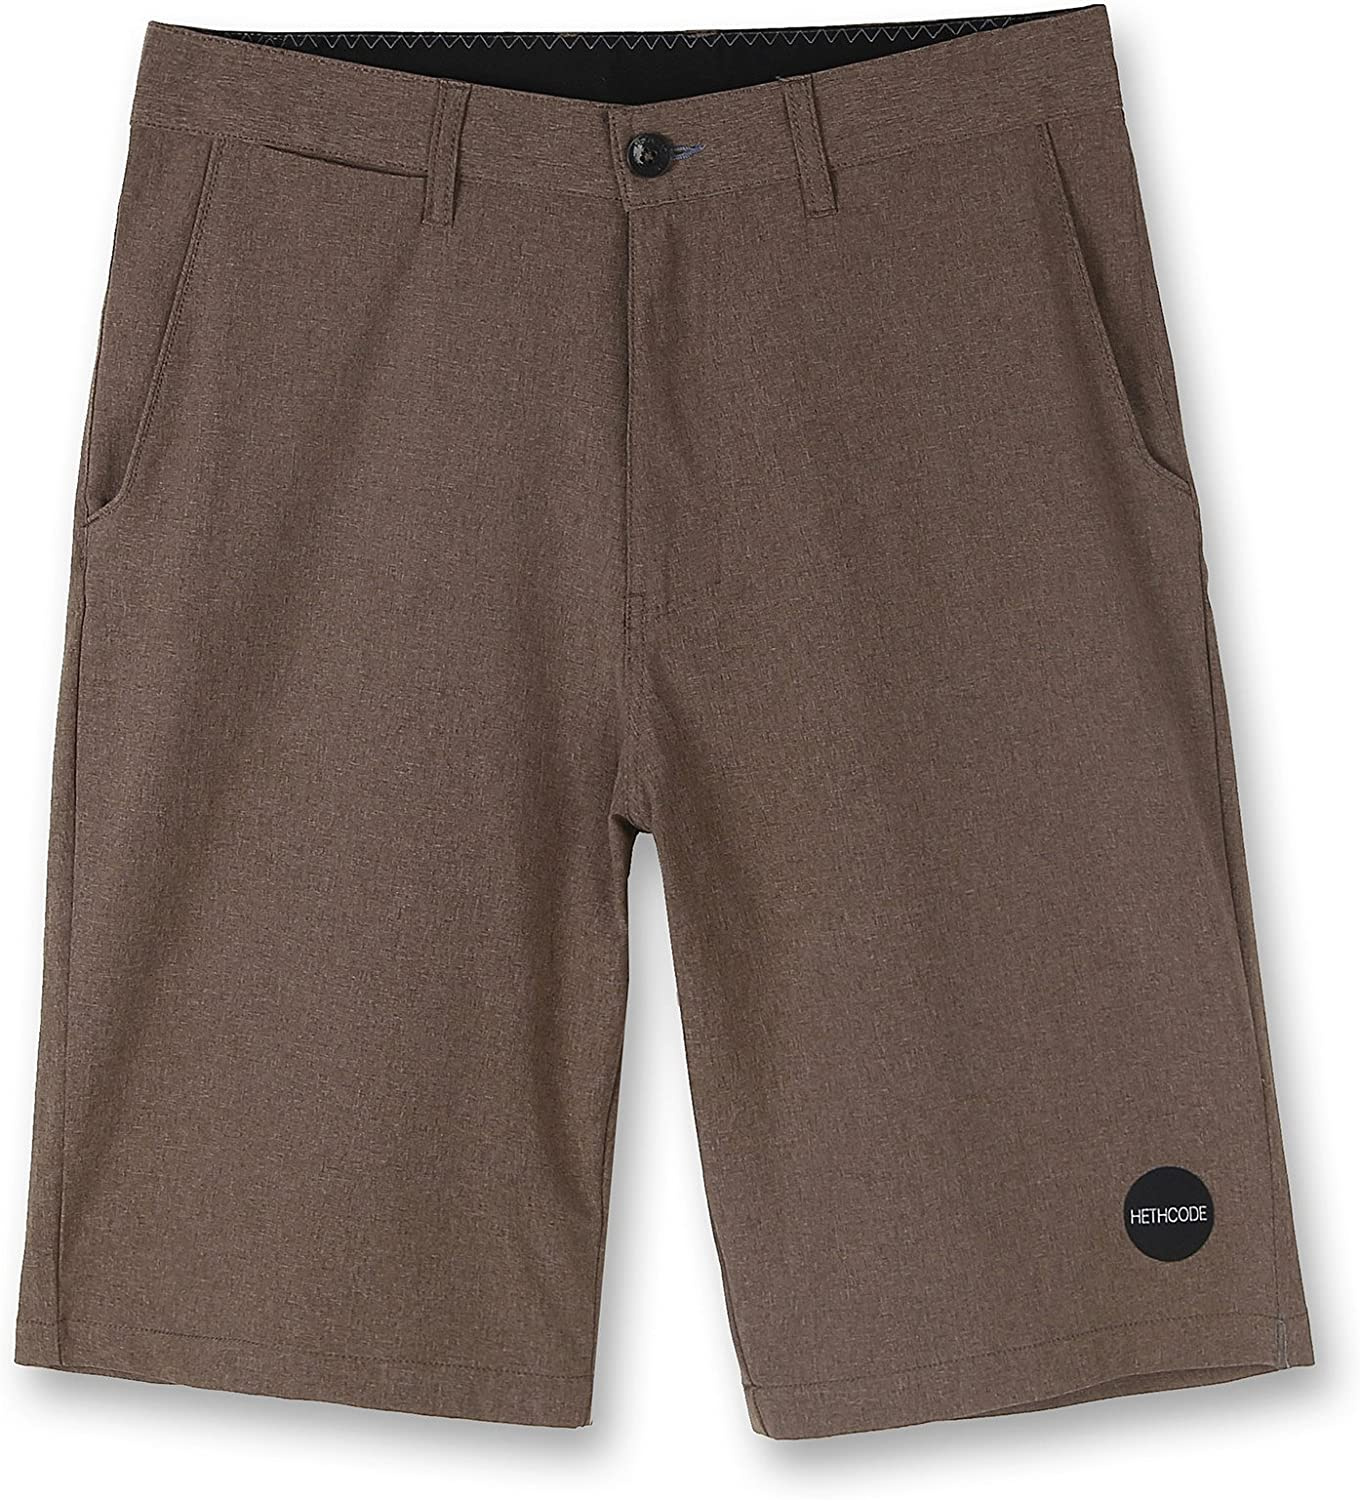 New popularity HETHCODE Men's Casual Classic Austin Mall Fit Chino Submersible Hybrid Walk